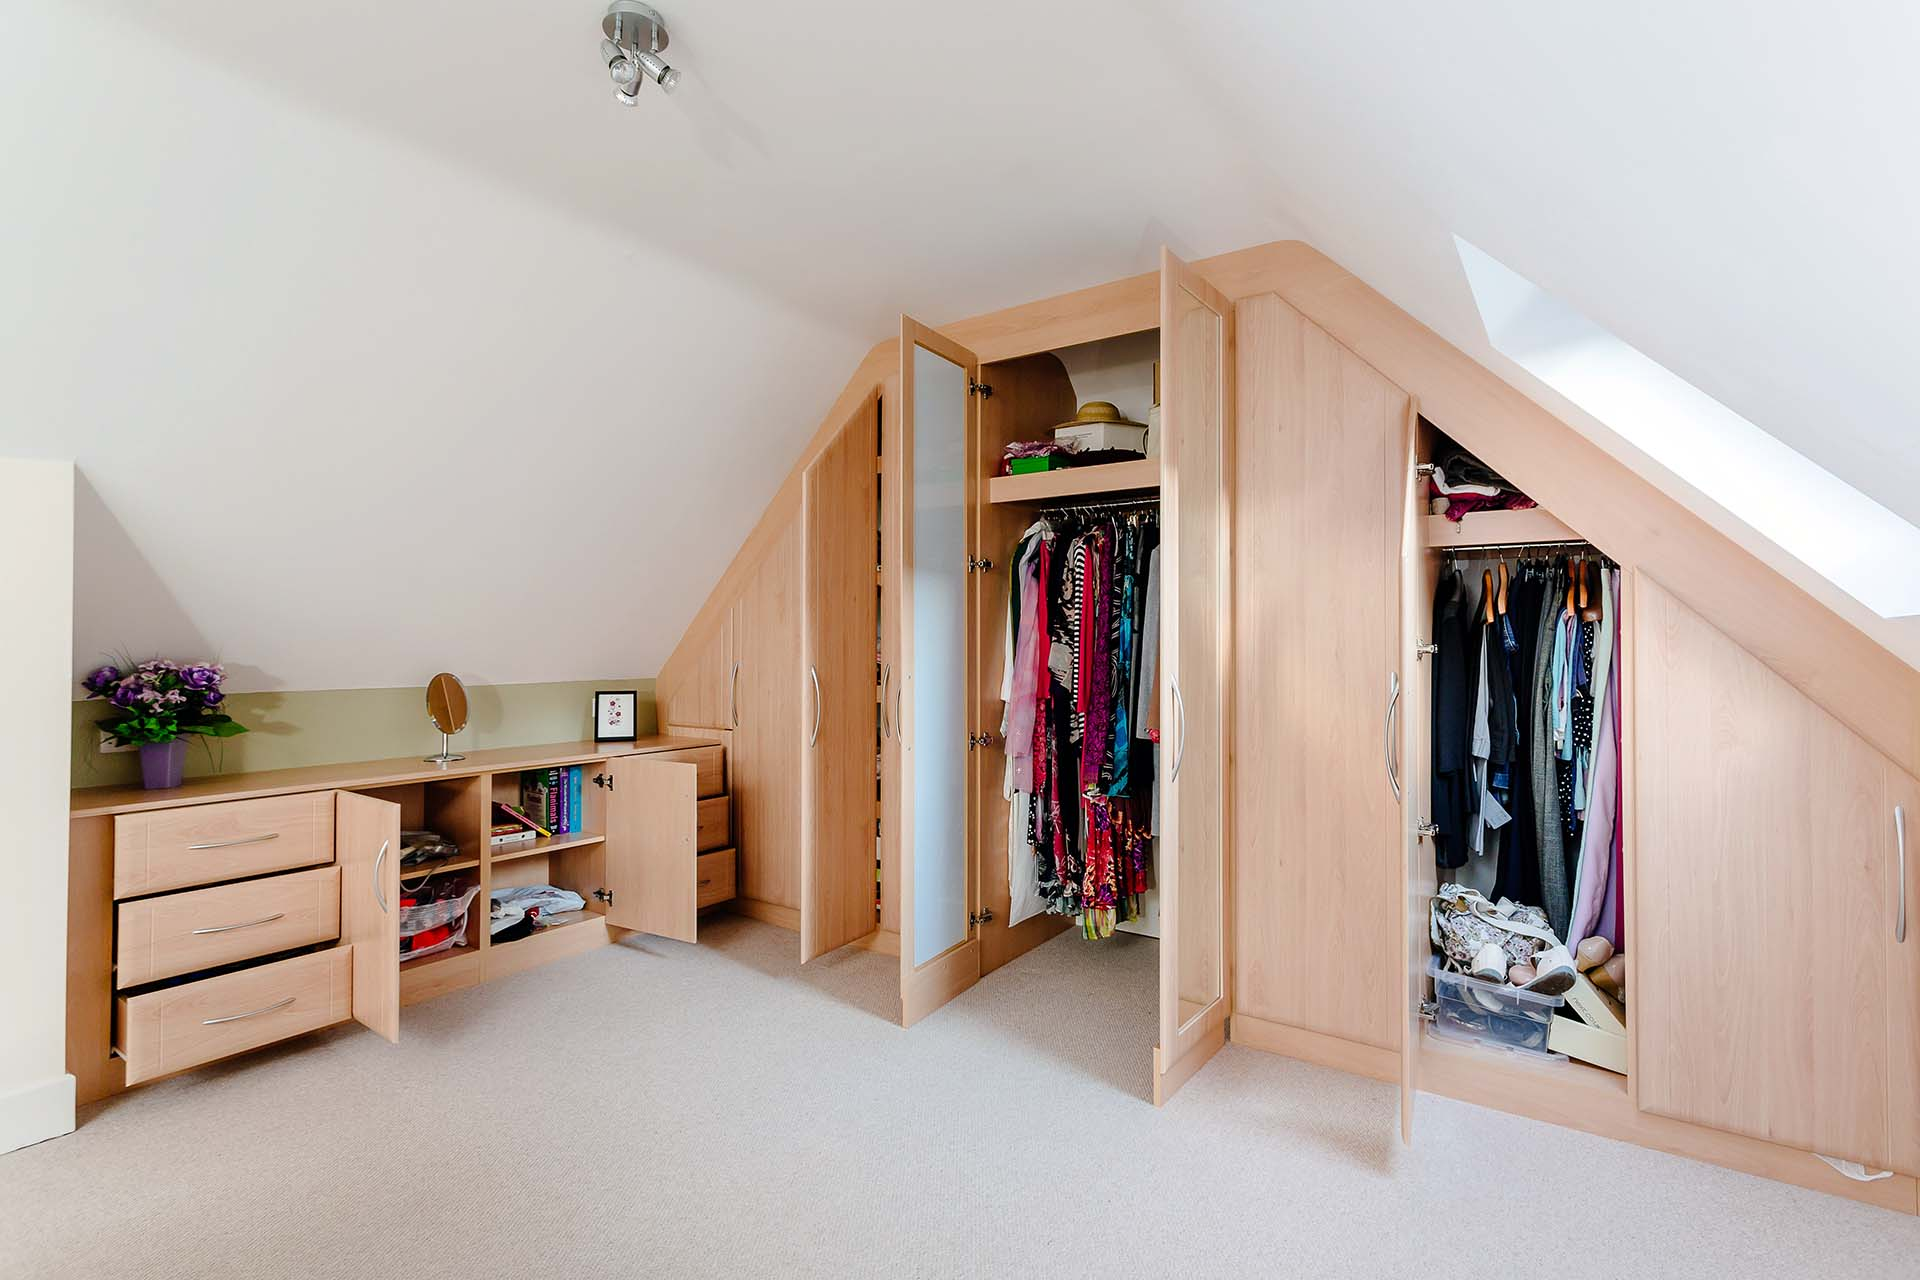 Hinged doors fully opened with generous storage room